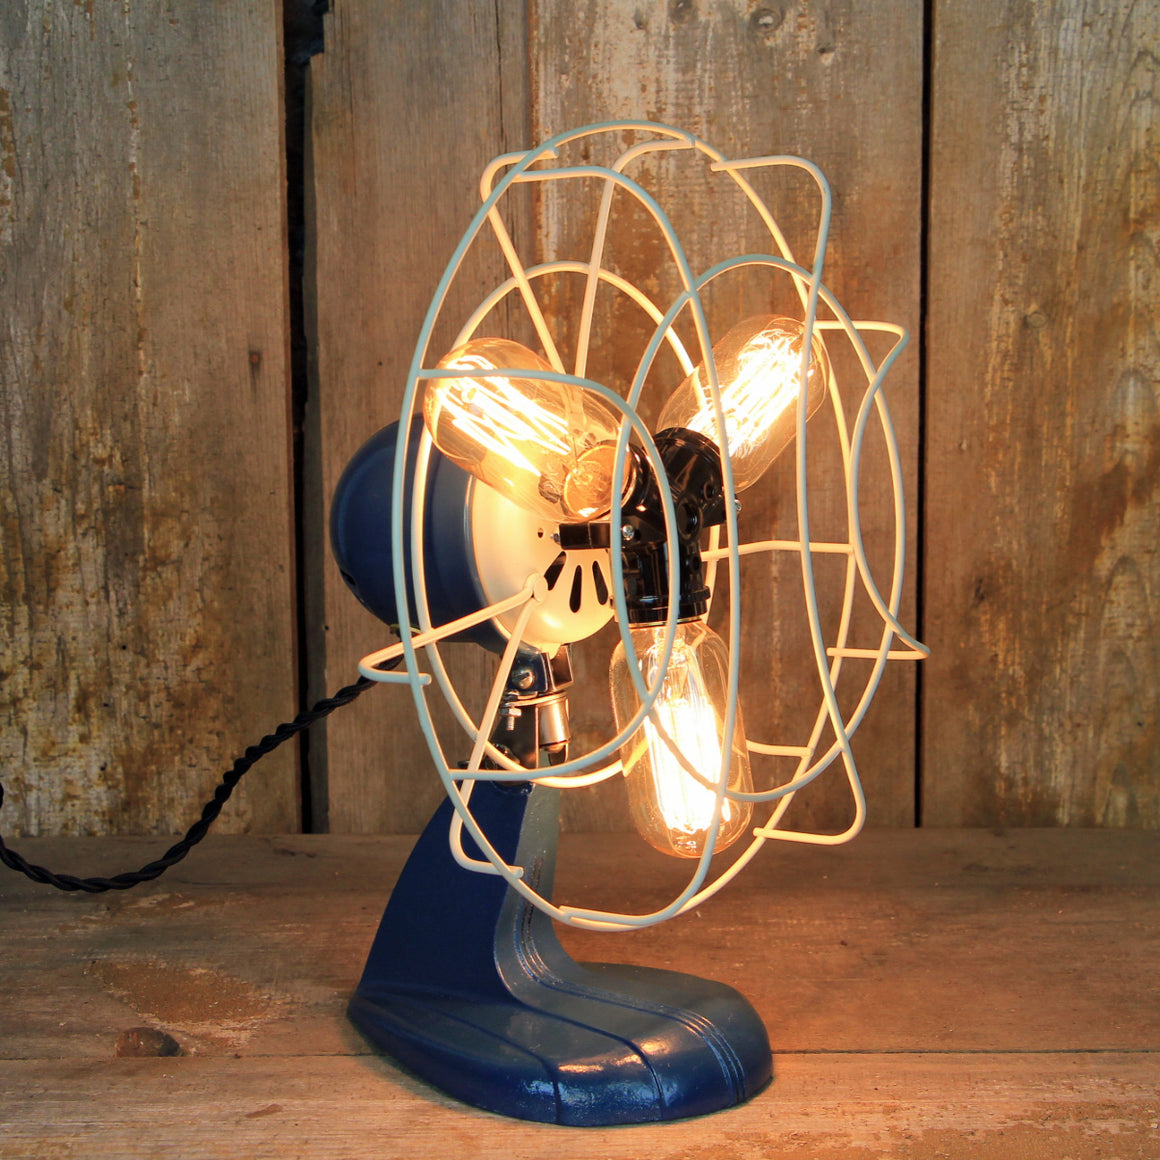 Steampunk Desk Lamp - Art Deco Styling - Steampunk Table Lamp - Edison Bulb Fan Lamp  #281 - The Lighting Works